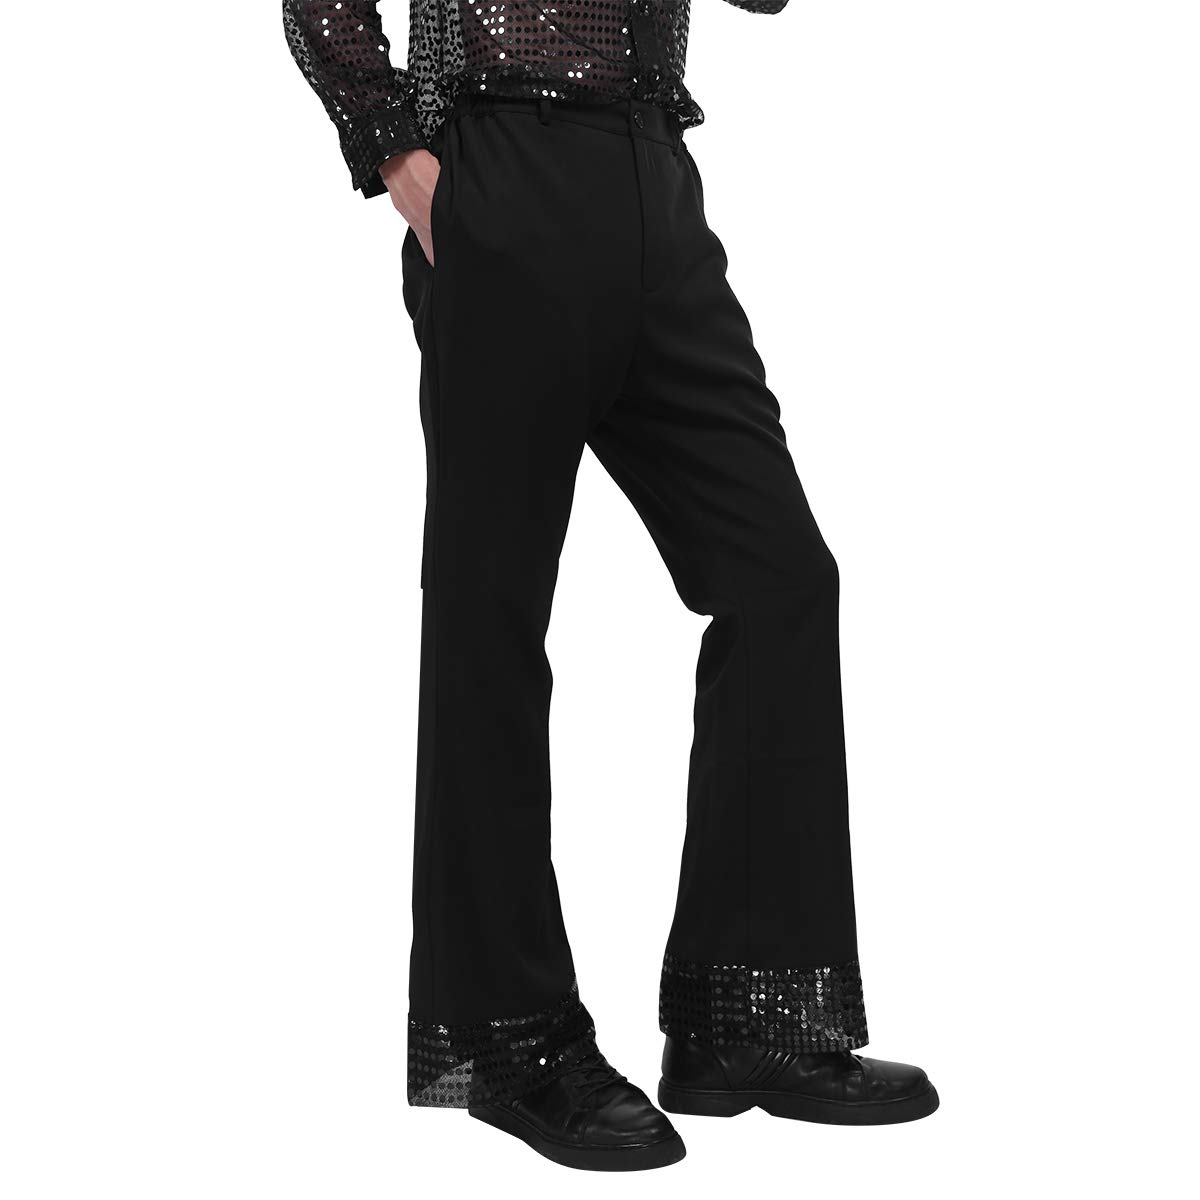 inhzoy Mens Sequins Cuffs Disco Dude Costume Retro 70s Disco Pants Dance Long Trousers Bell Bottoms